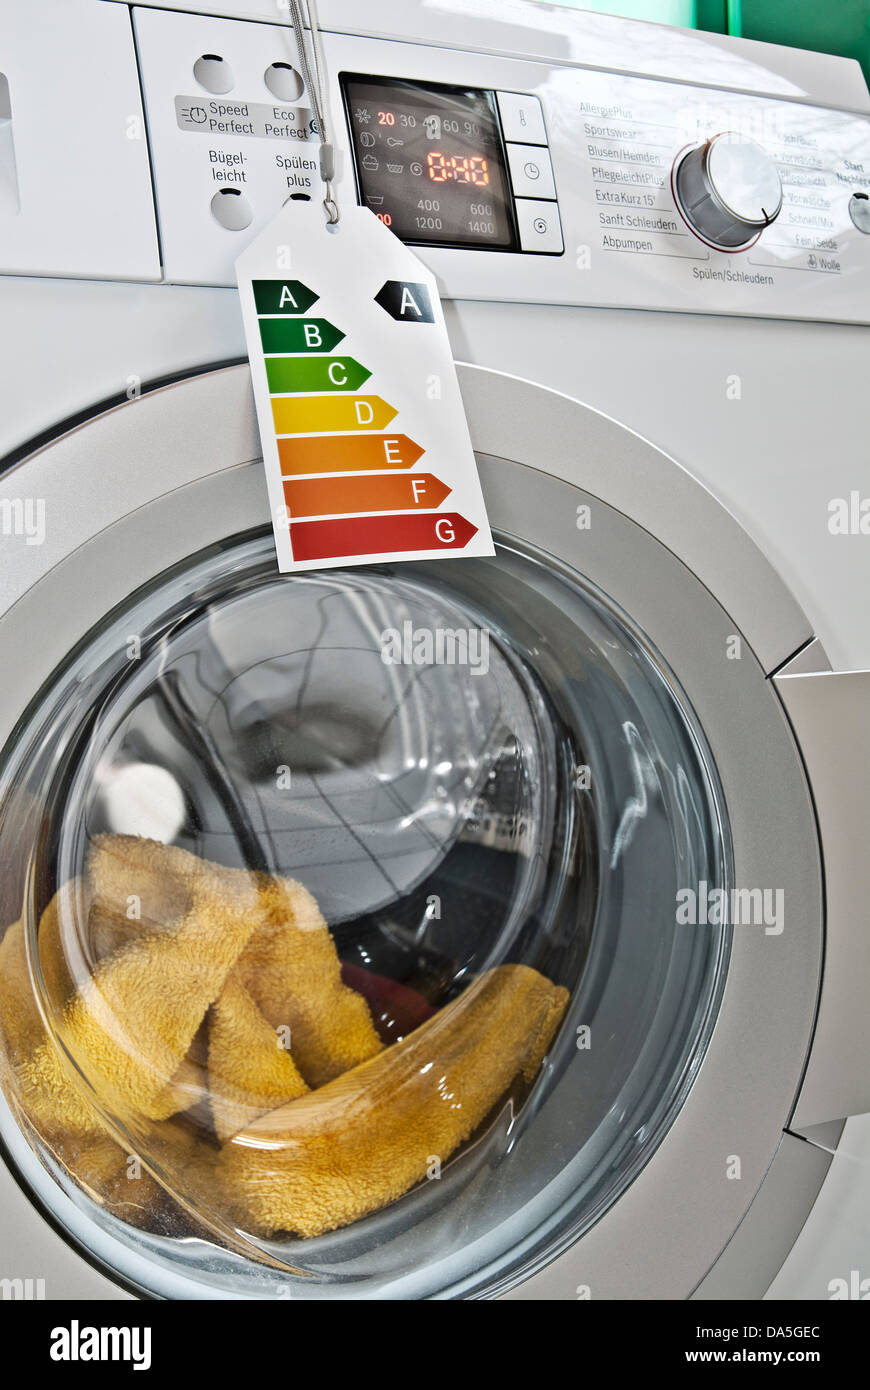 Washing machine with energy efficiency label - Stock Image